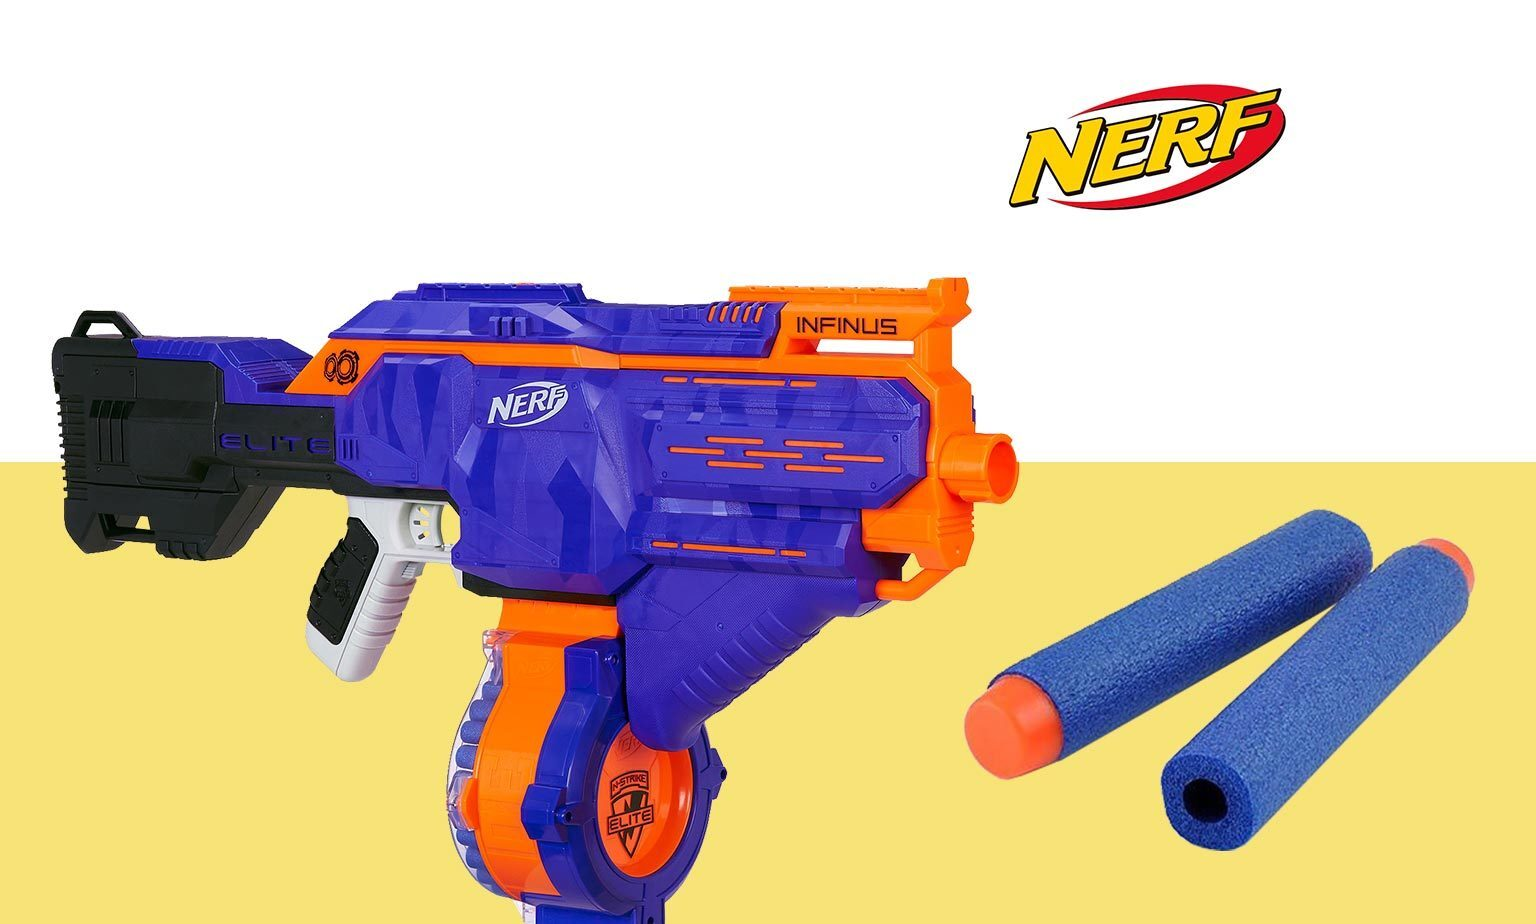 20% off* at NERF Outlet